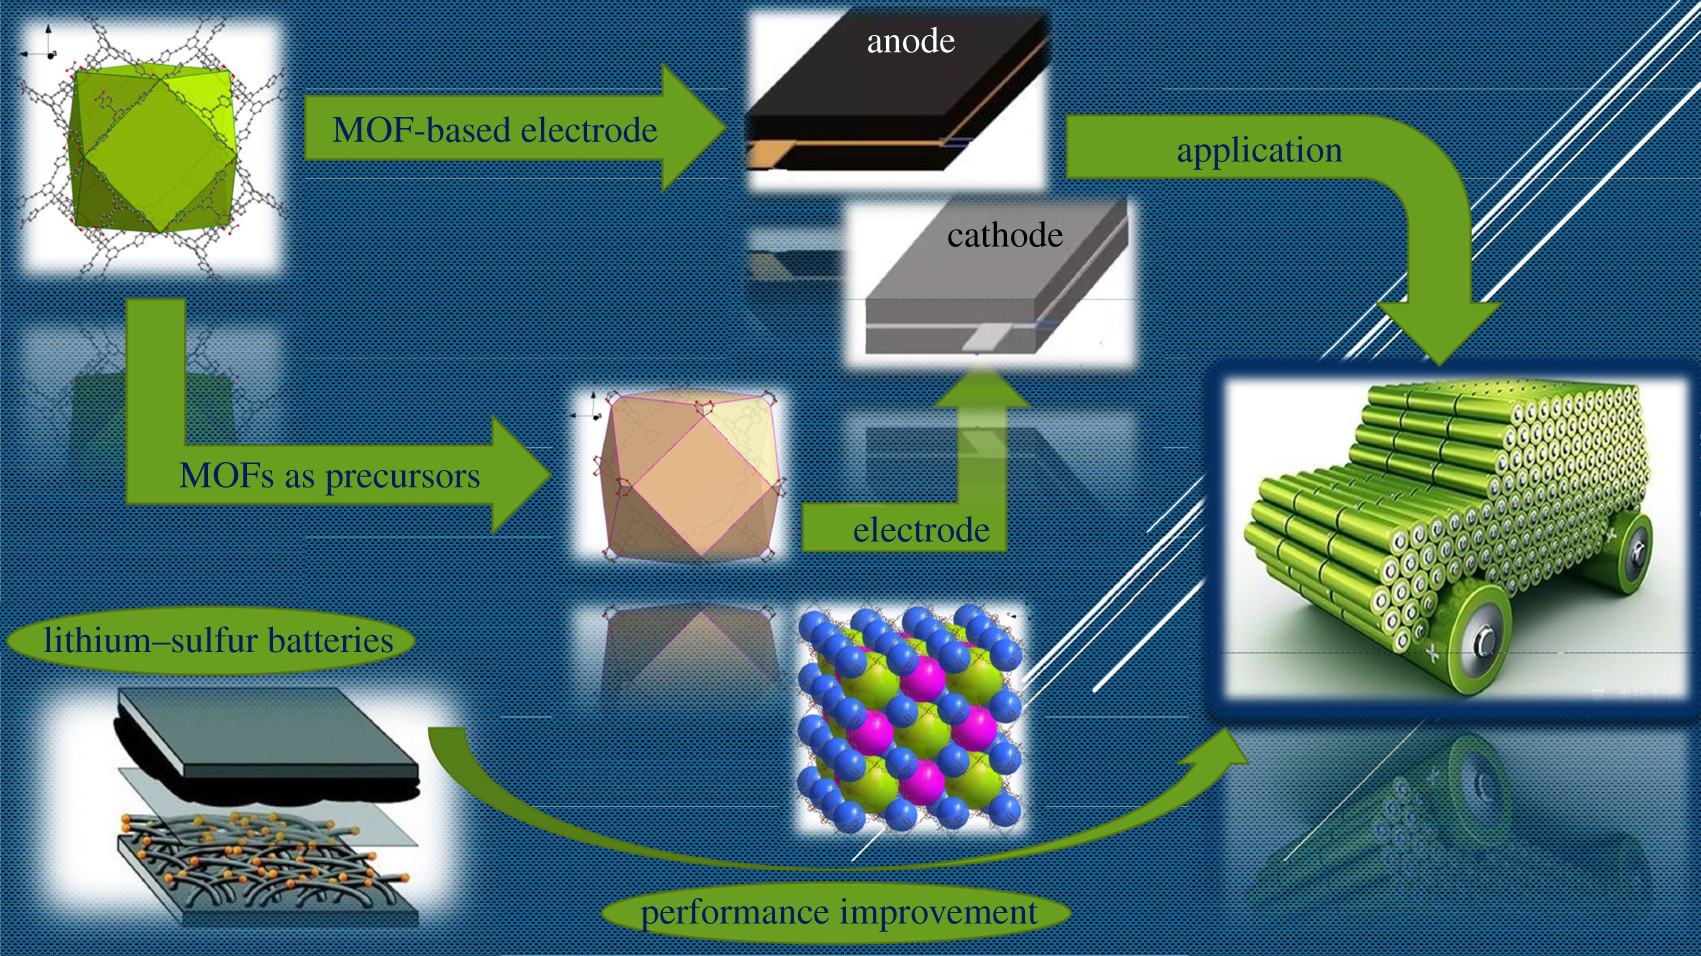 The application of metal-organic frameworks in electrode materials